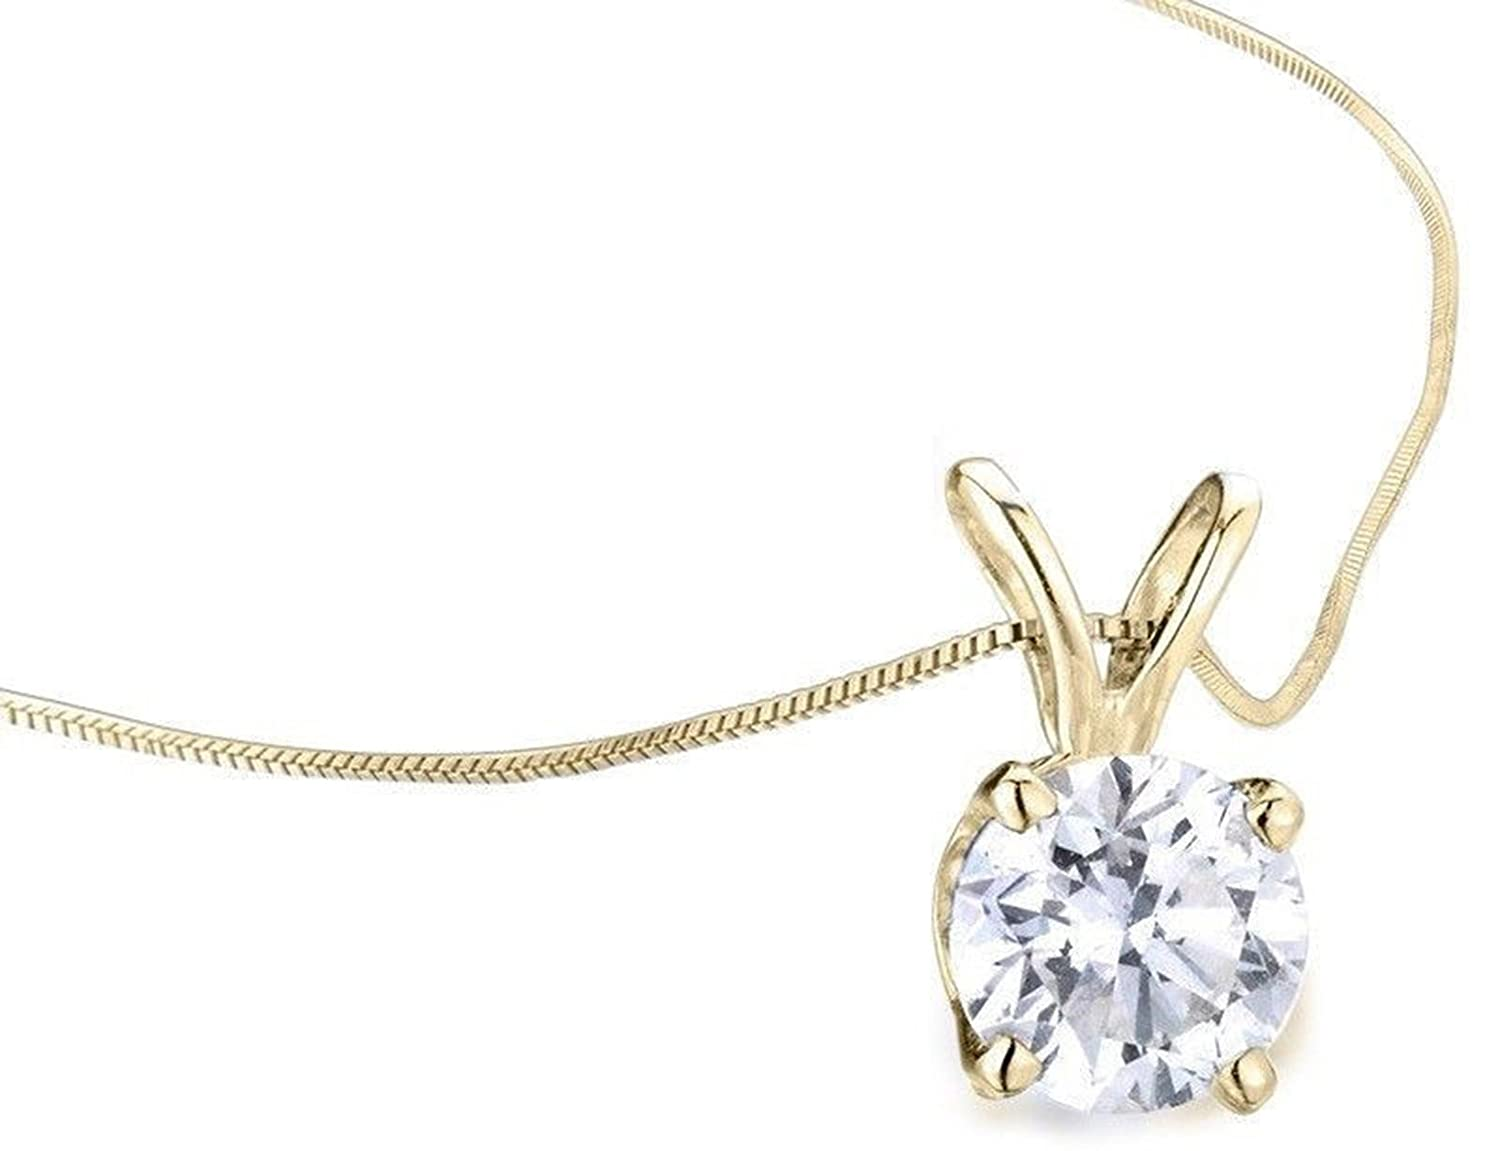 Clara Pucci 2.9 CT Round Cut Real Solid 14K Yellow Gold Solitaire Pendant Box Necklace 16 Chain